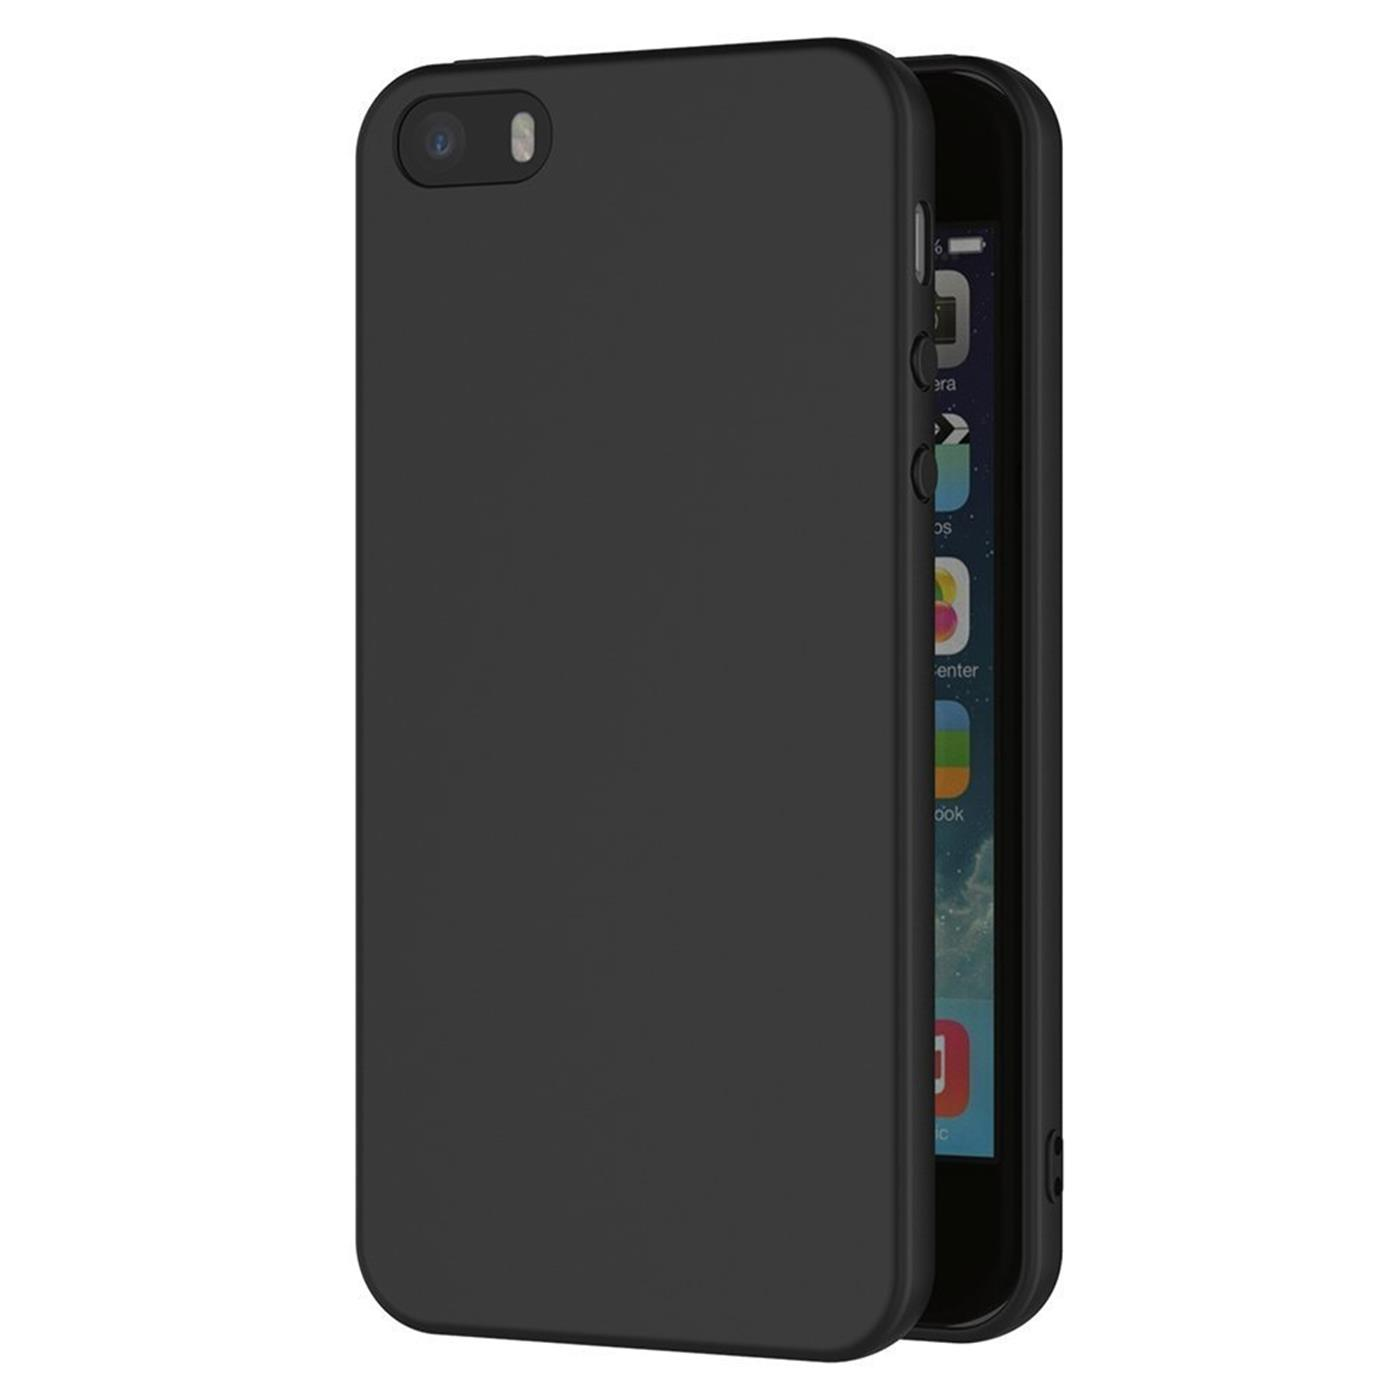 Slim-Black-Matt-Apple-iPhone-5-5s-SE-Shockproof-Silicone-Case-Thin-Cover-Back thumbnail 9